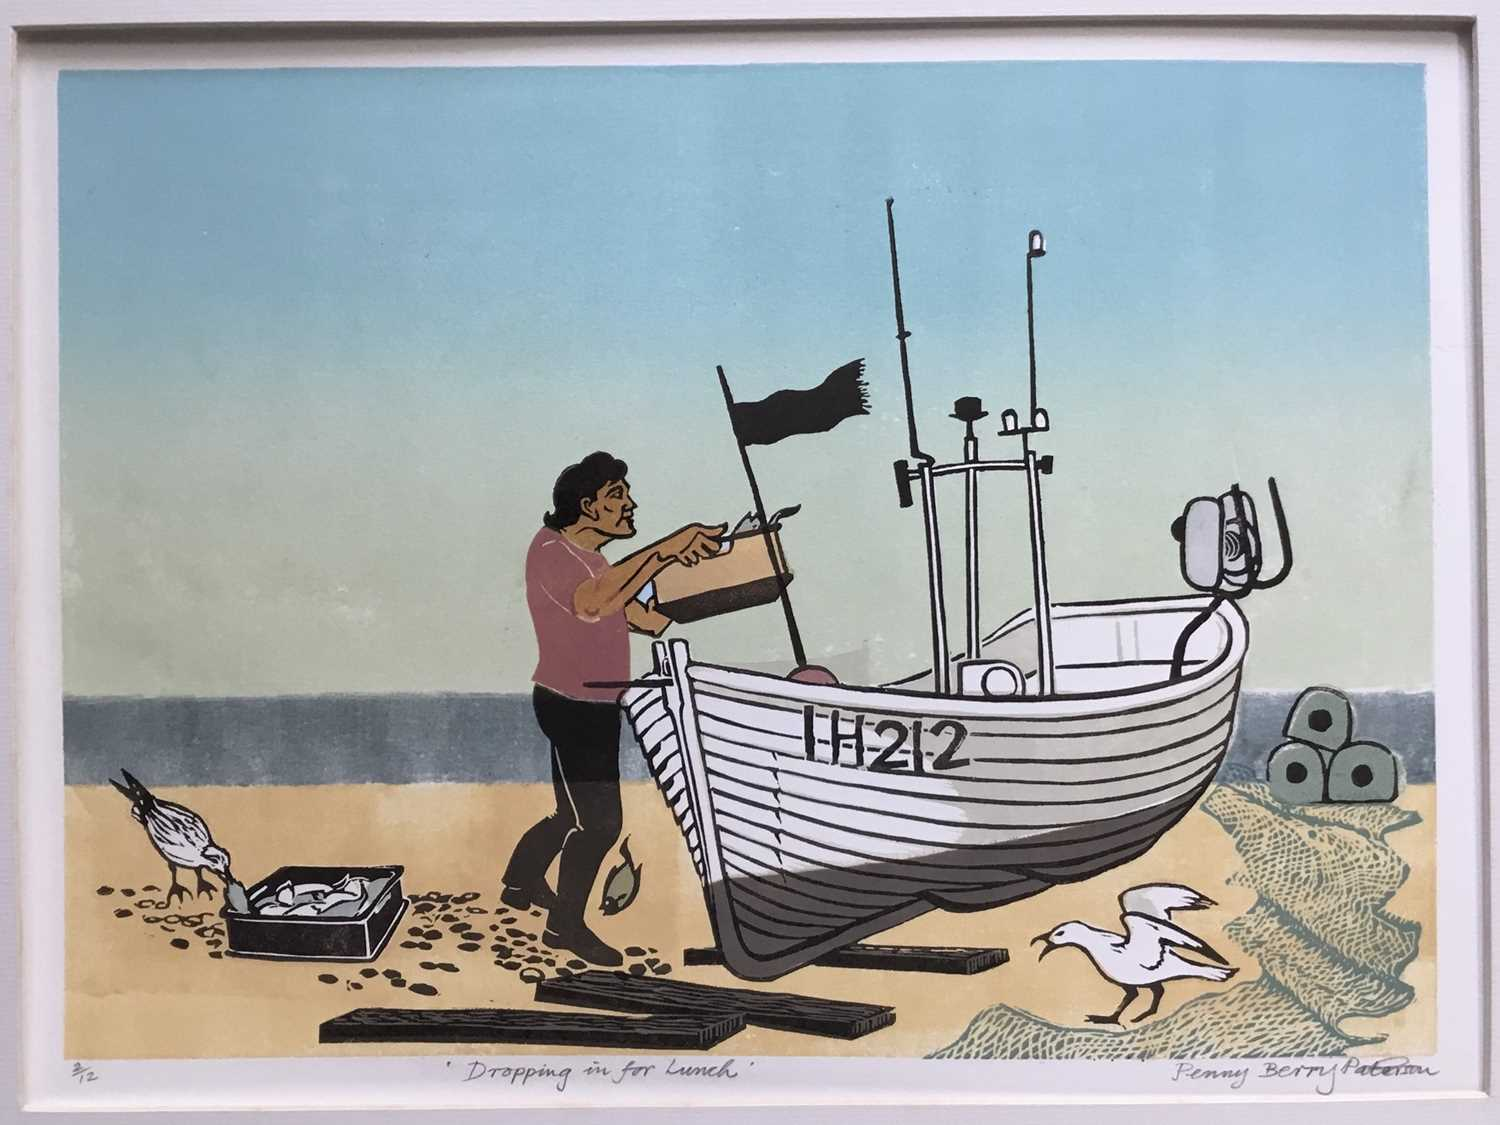 Penny Berry Paterson (1941-2021) colour linocut print, Dropping in for lunch, signed and numbered 2/